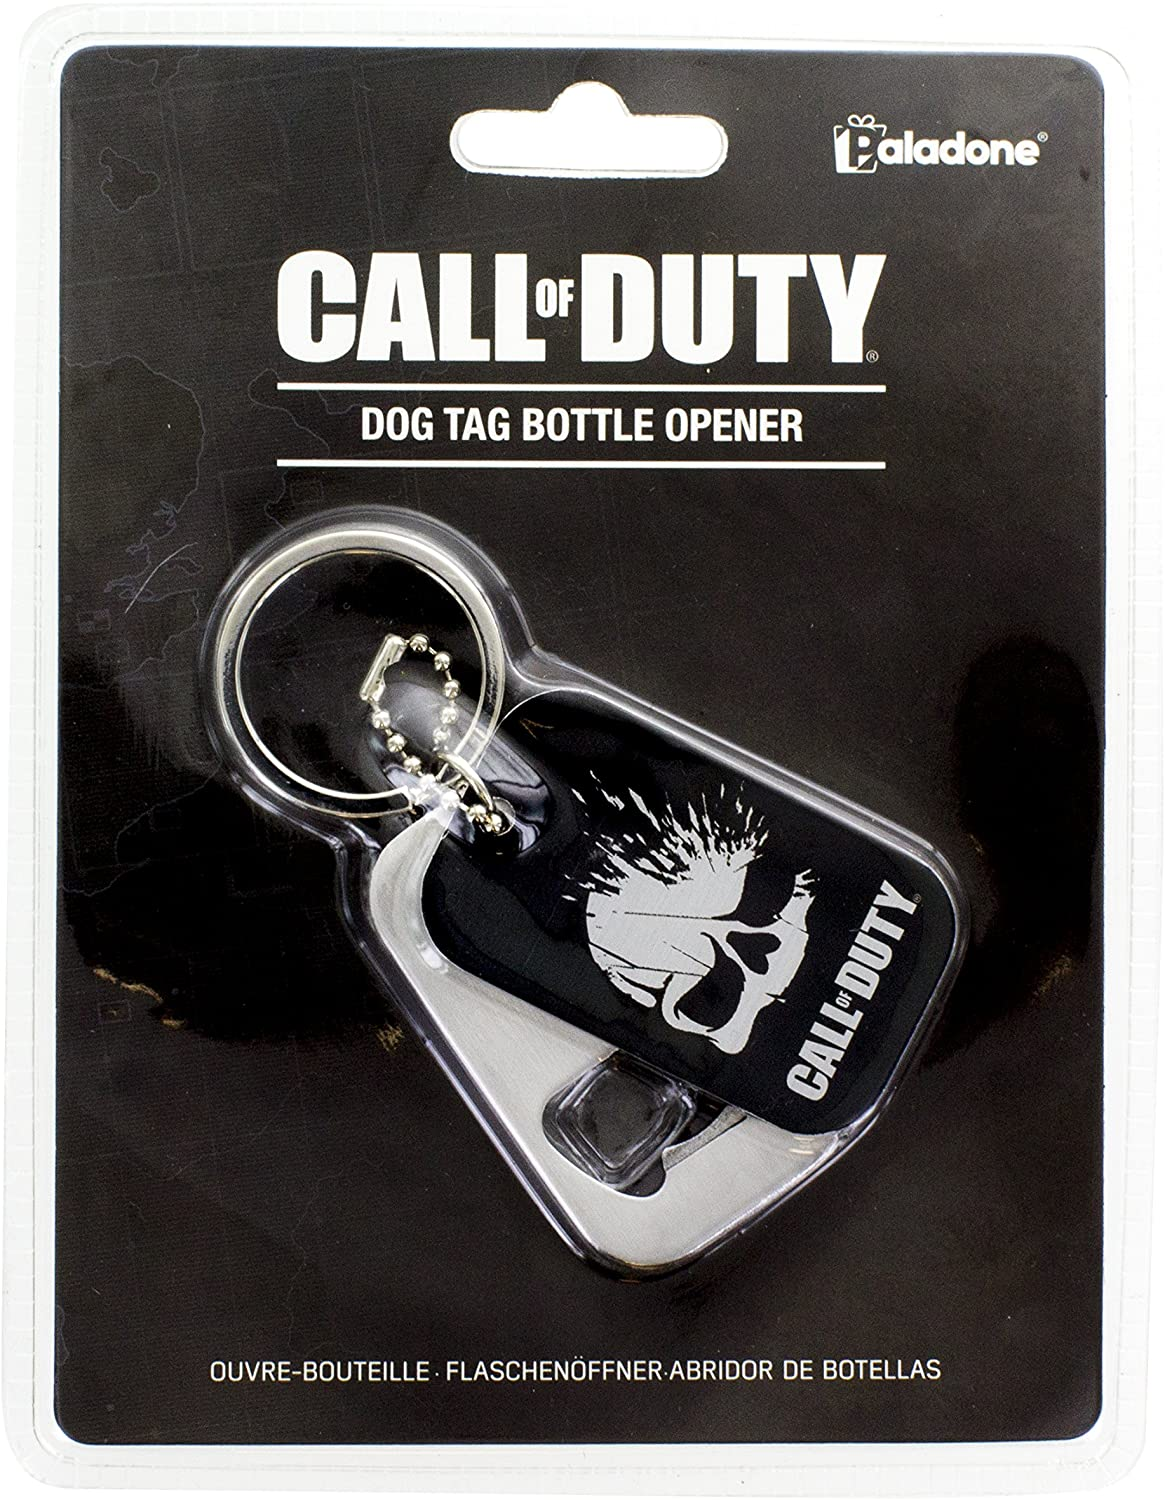 KEYCHAIN CALL OF DUTY DOG TAG BOTTLE OPENER